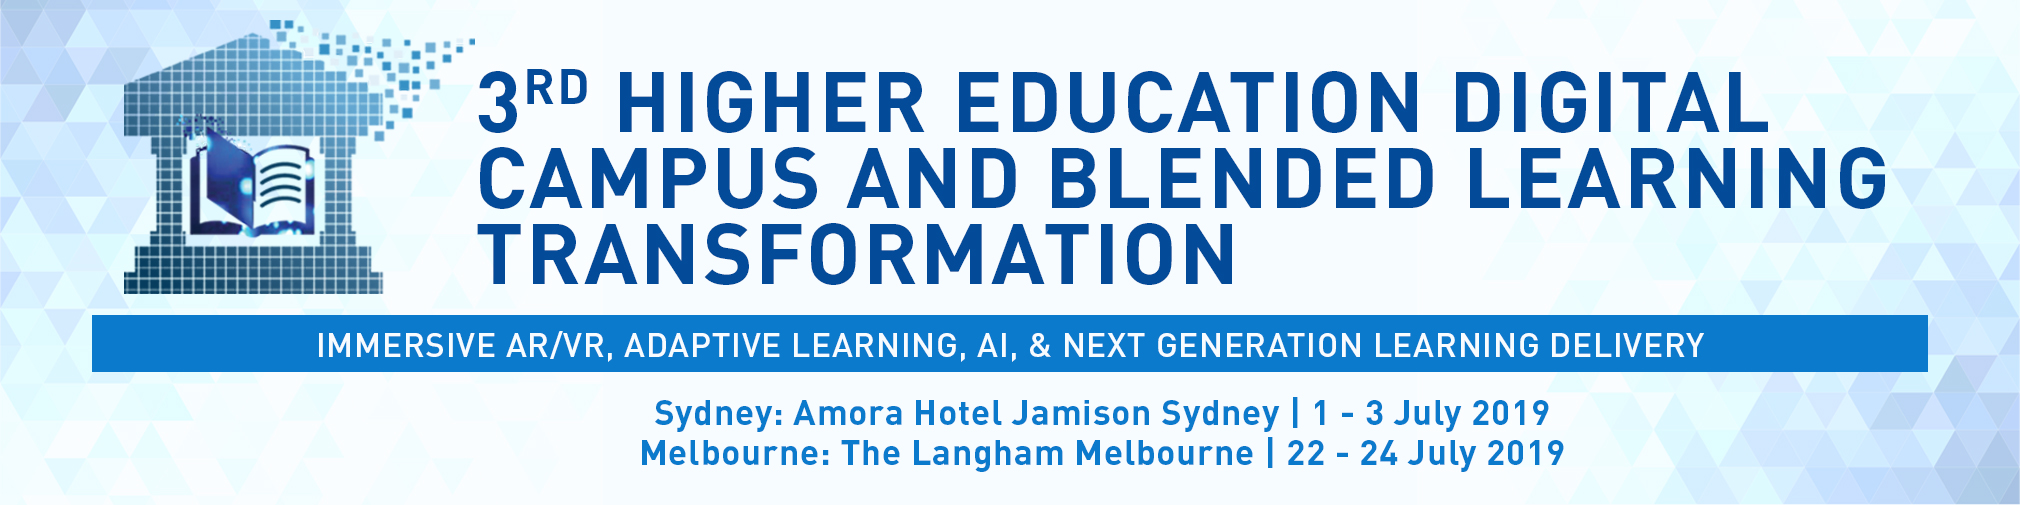 Clariden Global - 3rd Higher Education Digital Campus and Blended